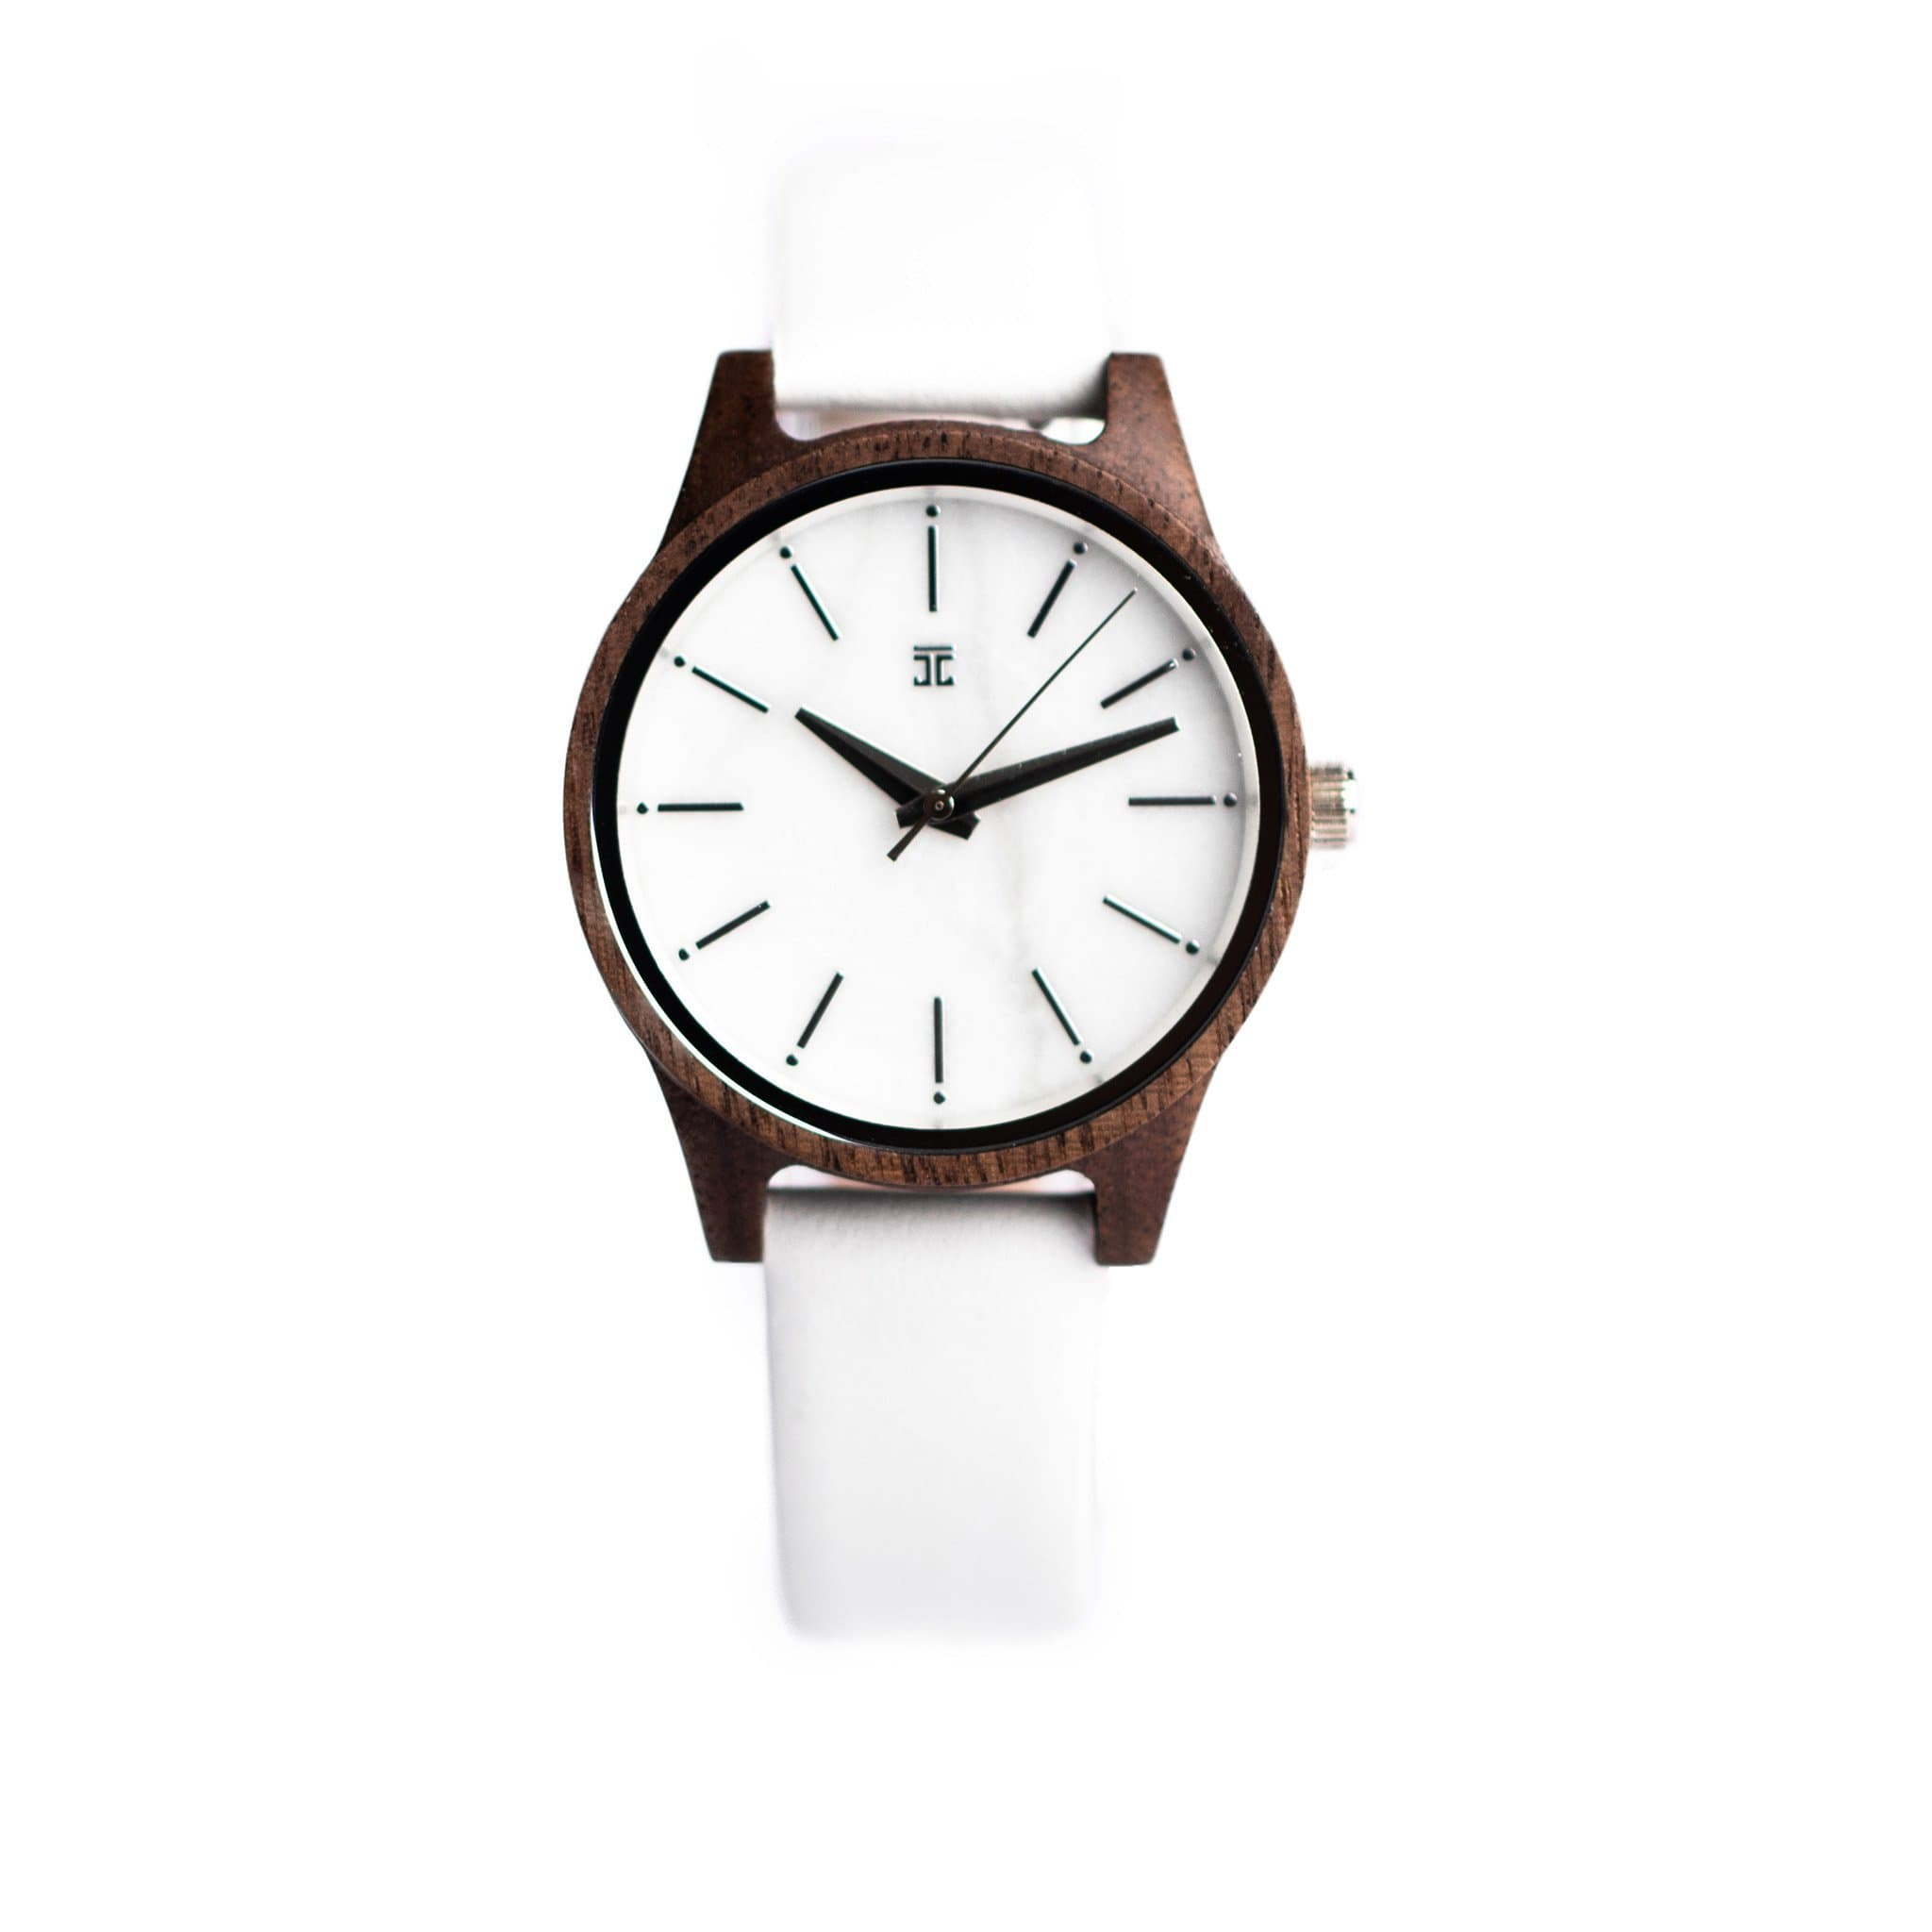 Casbo Walnut with Marble Face - Wooden Watches and Sunglasses - Joycoast